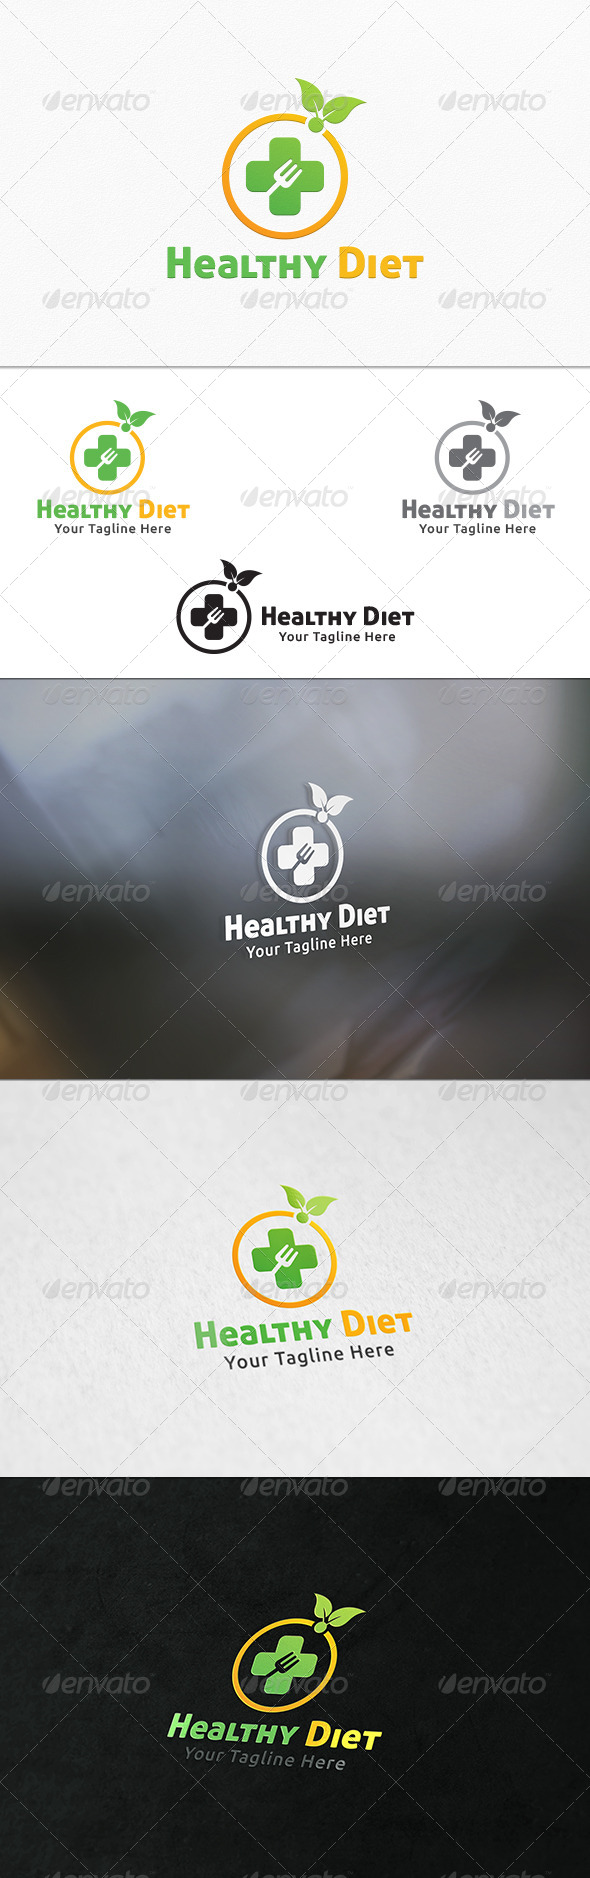 GraphicRiver Healthy Diet Logo Template 7842404